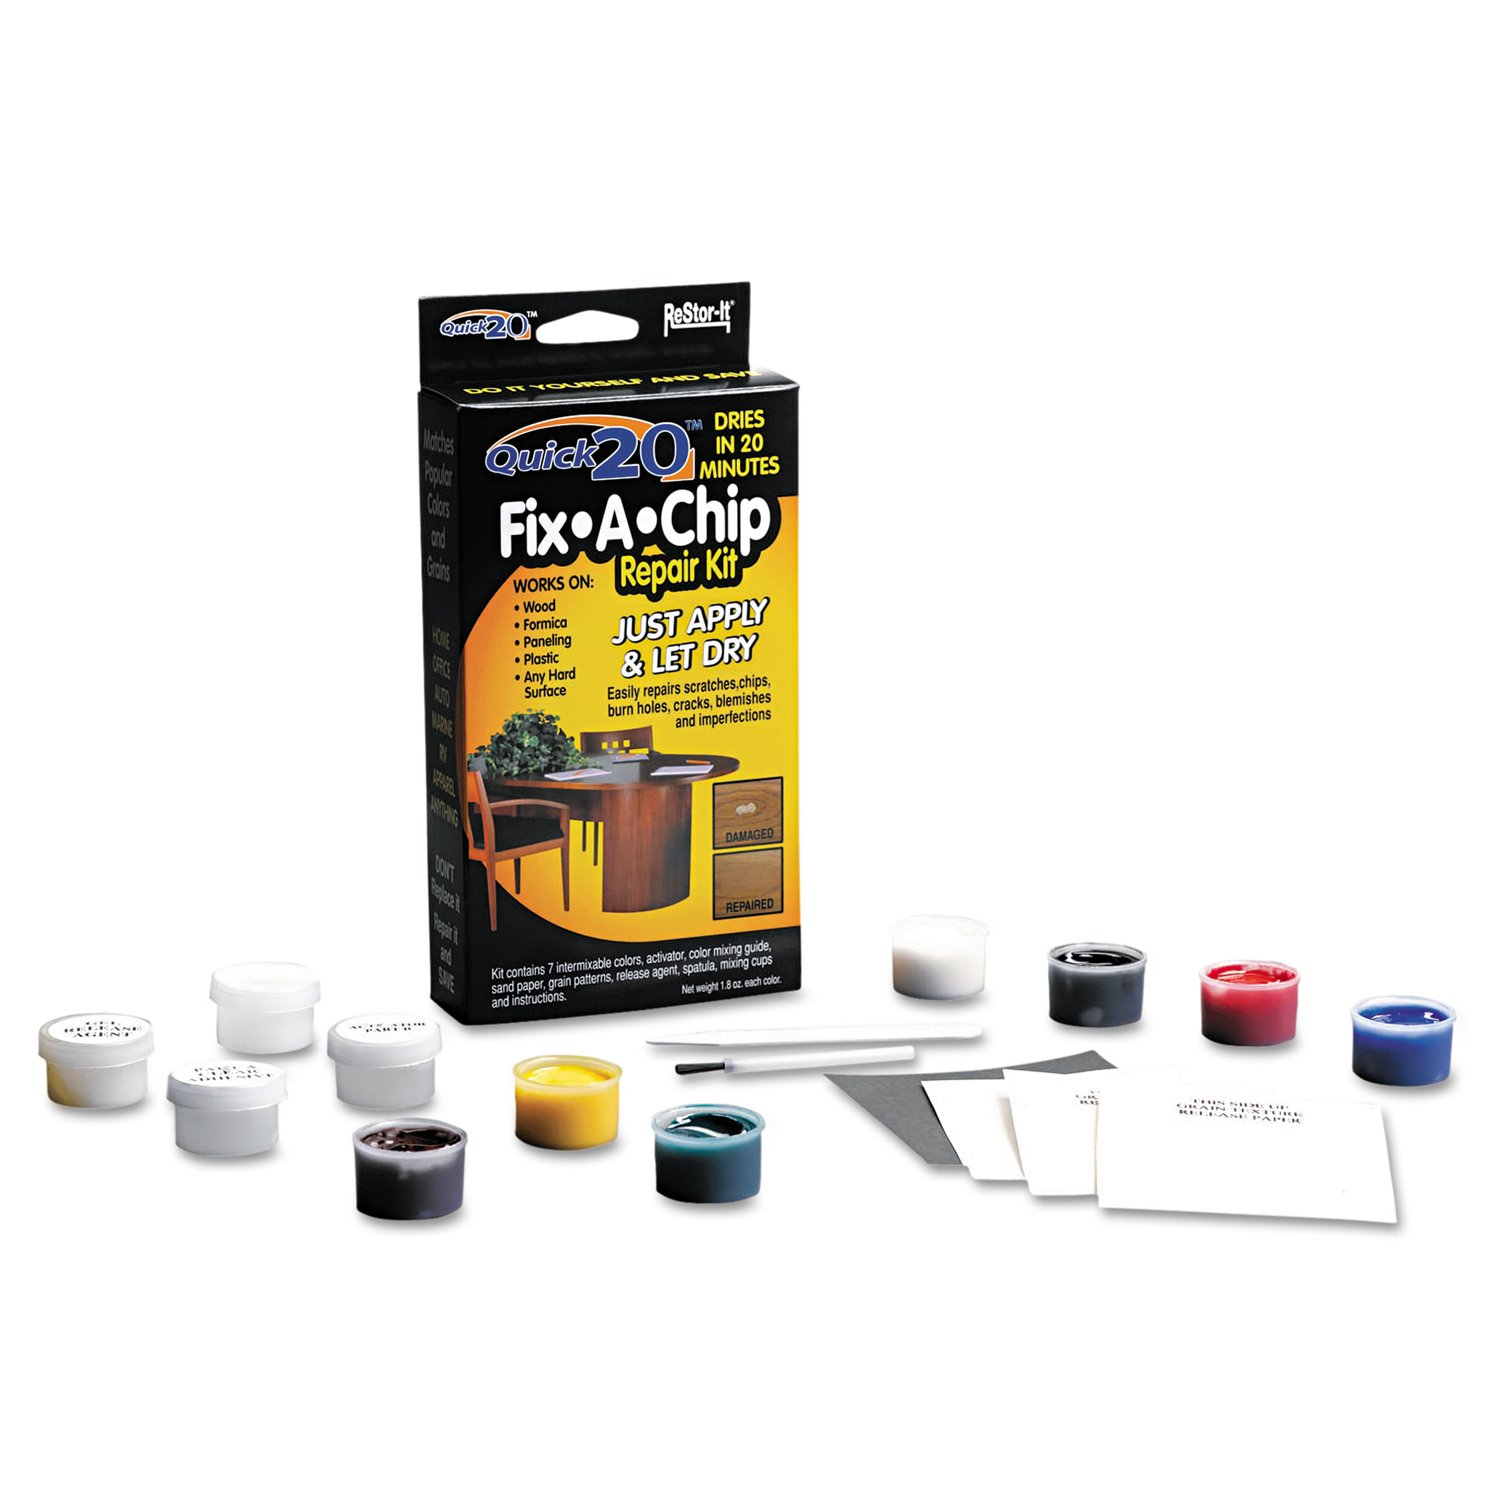 furniture repair kit. amazon.com: restor-it quick20 fix-a-chip repair kit, 7 intermixable colors, mixing cup, applicator, color guide (18084): home \u0026 kitchen furniture kit i